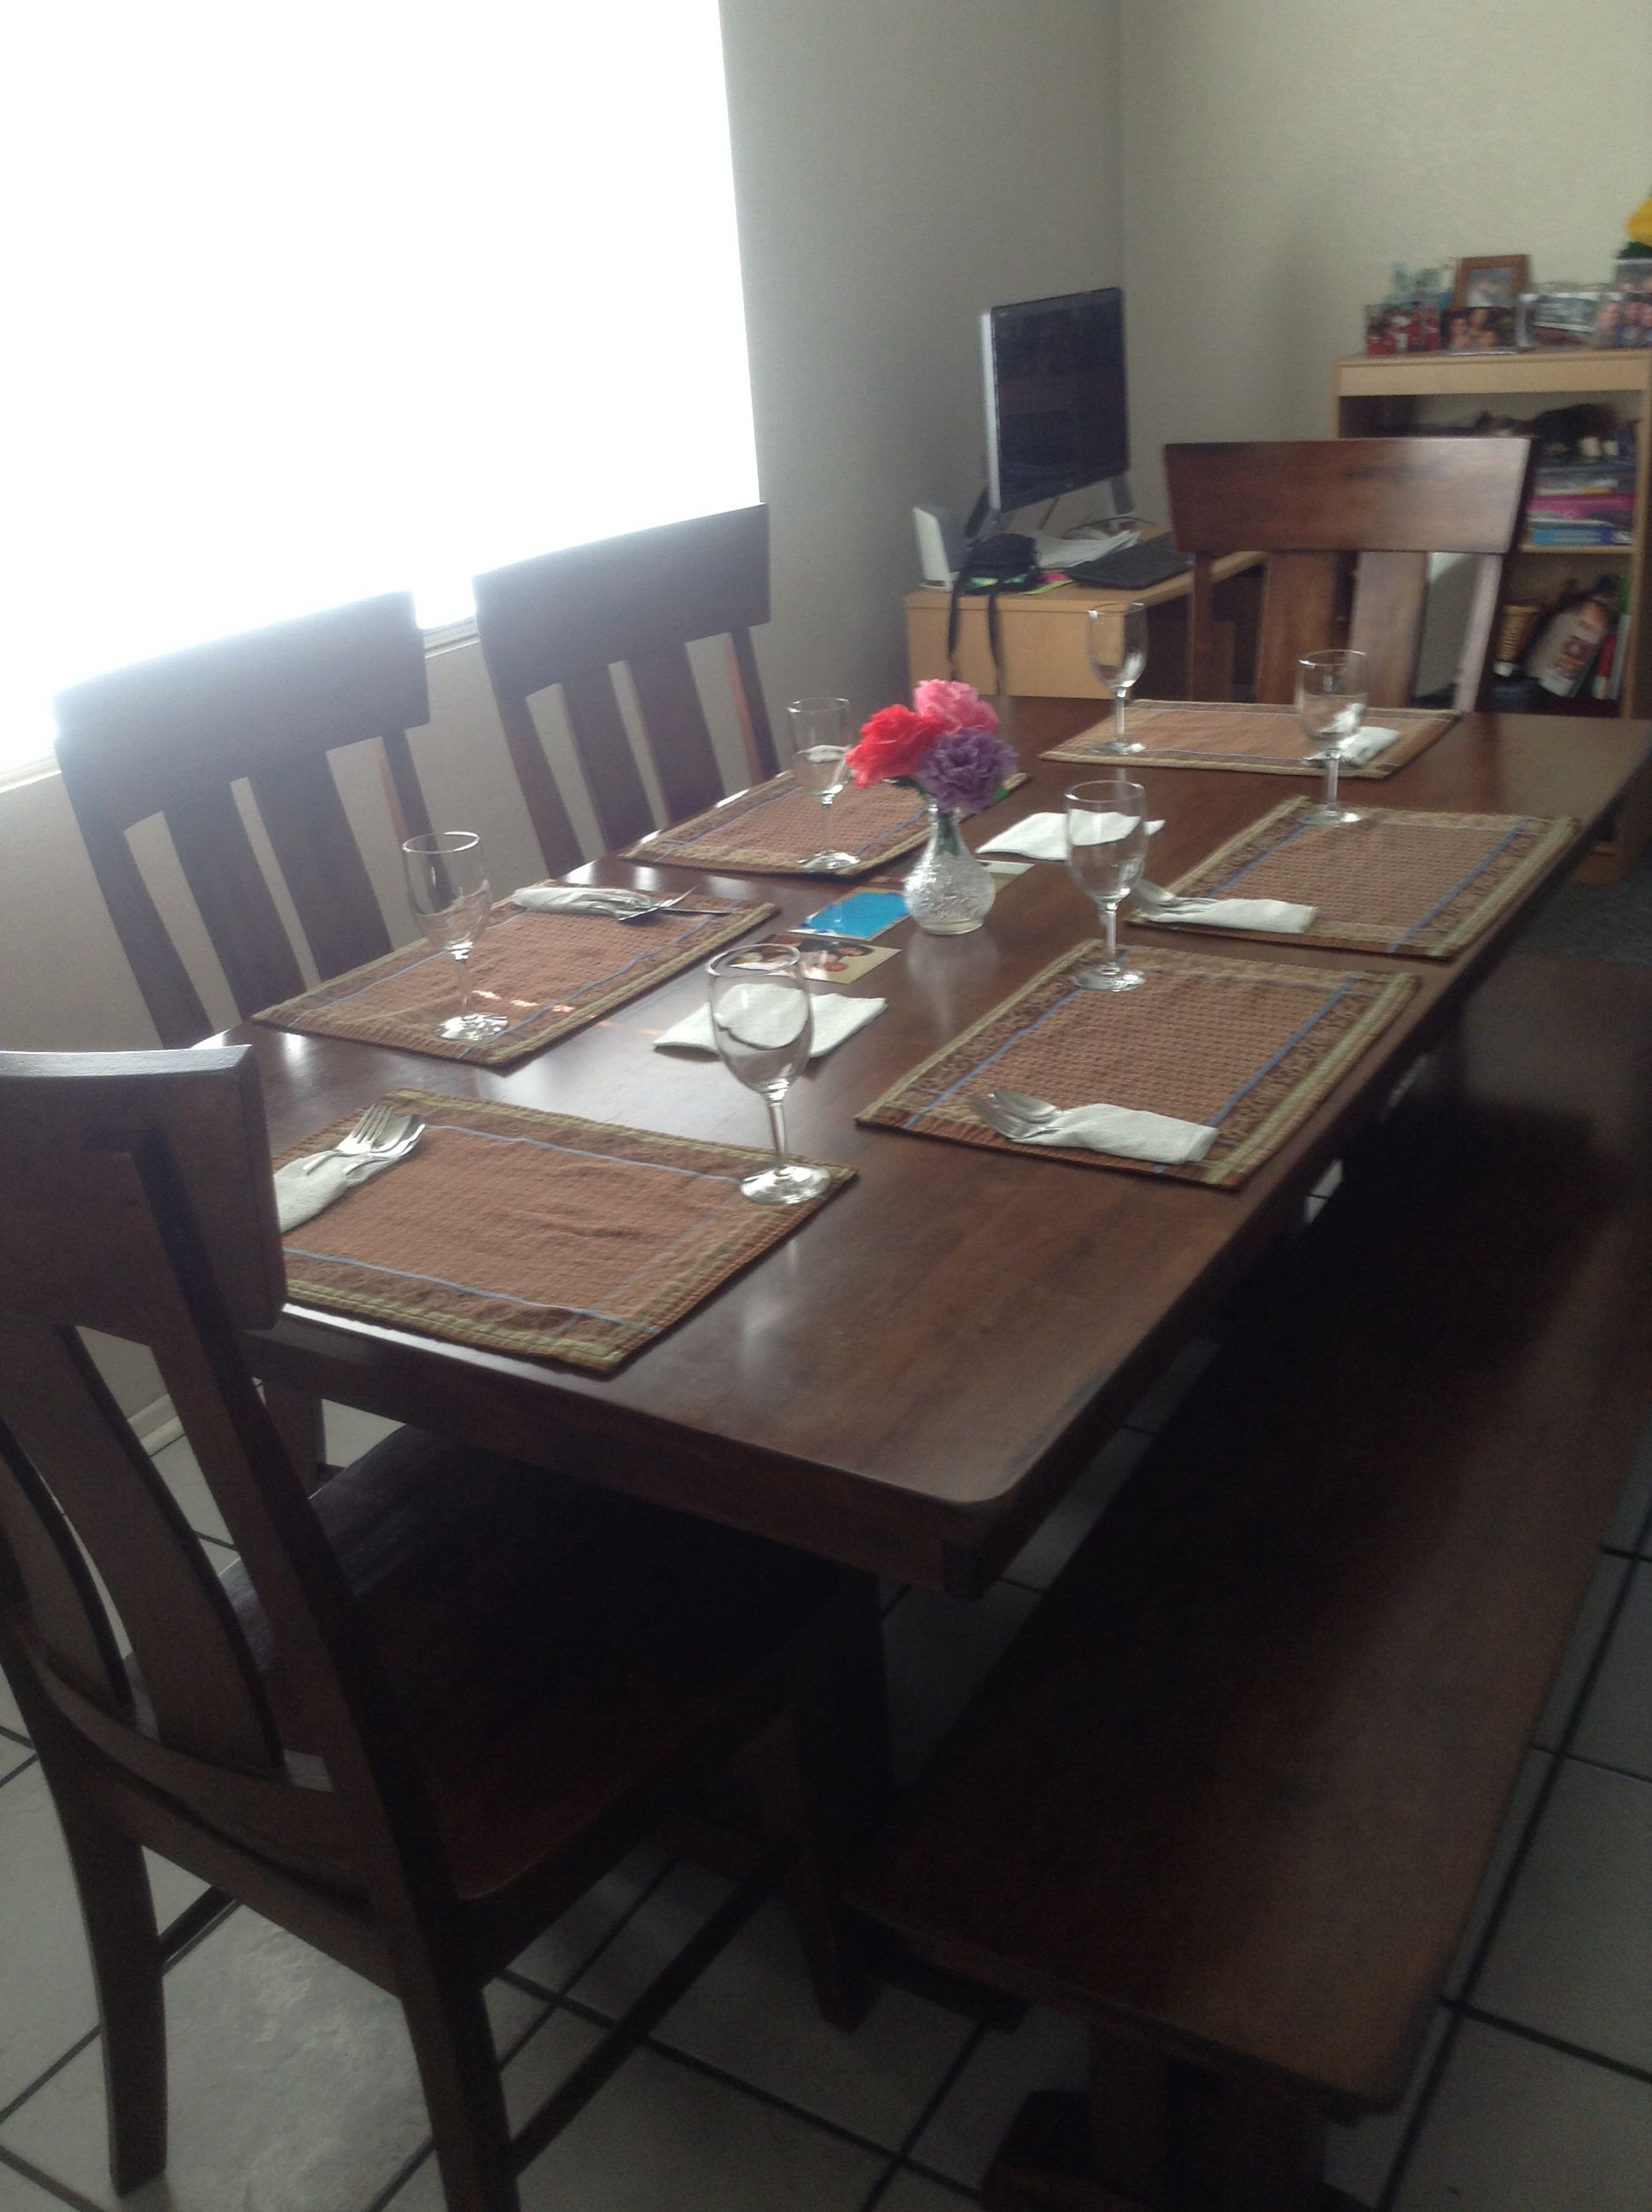 We did a nice table to eat on